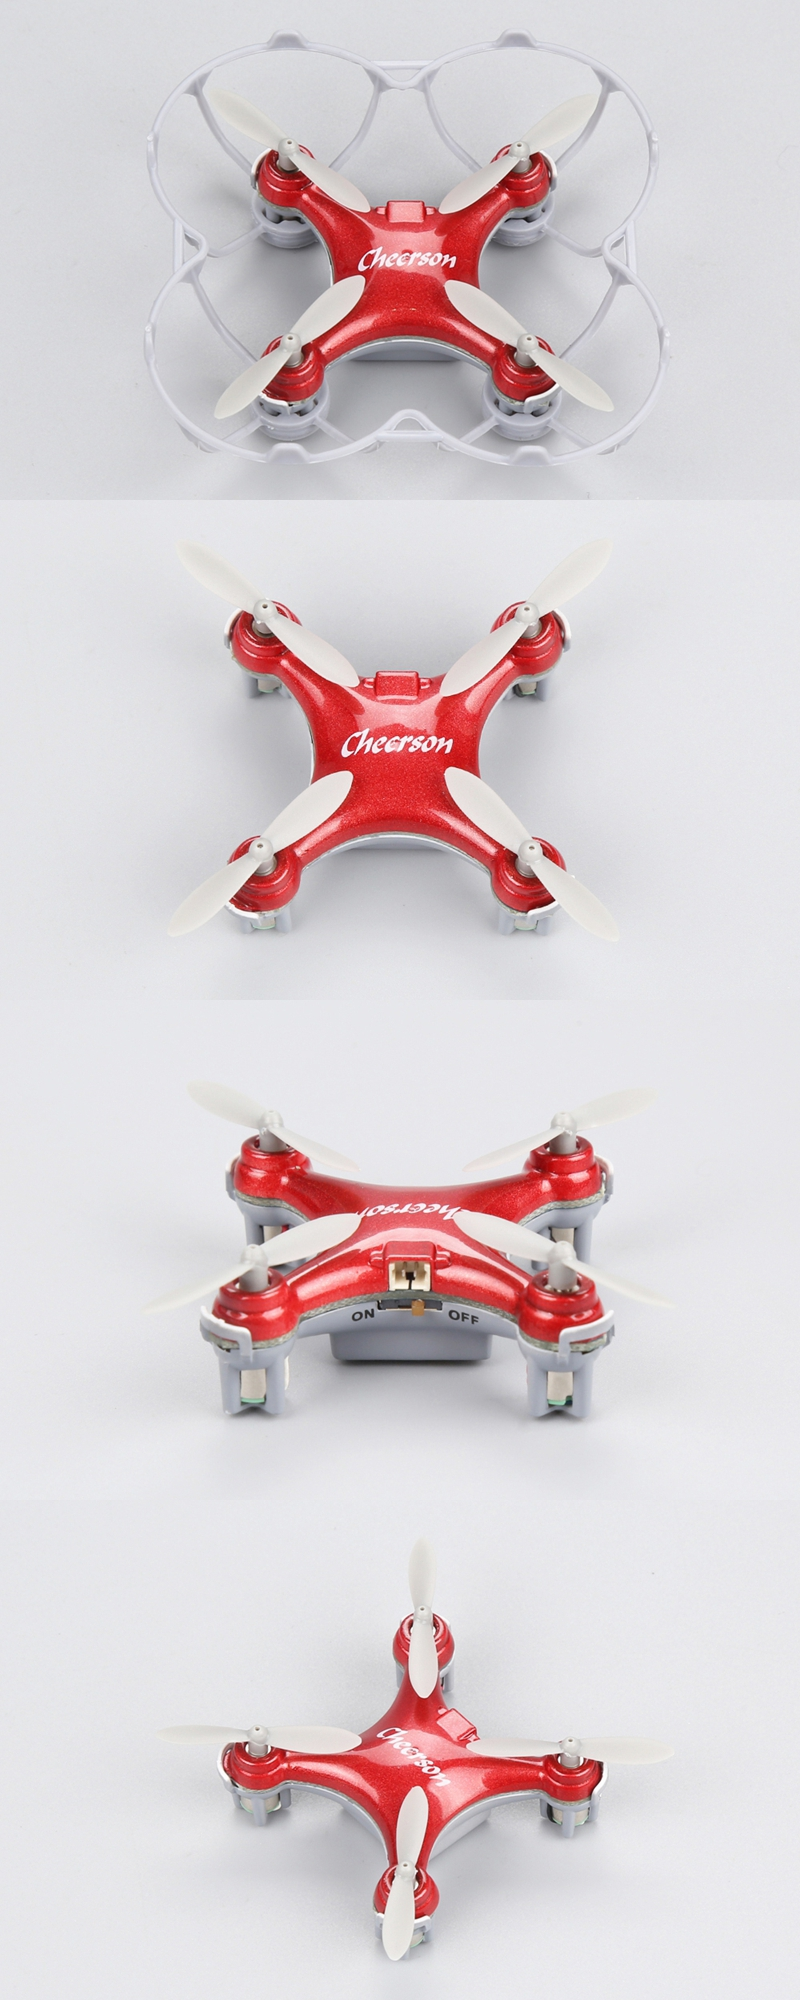 Cheerson CX-10SE CX10SE Mini 3D Flips 2.4G 4CH 6 Axis LED RC Quadcopter RTF - Photo: 10